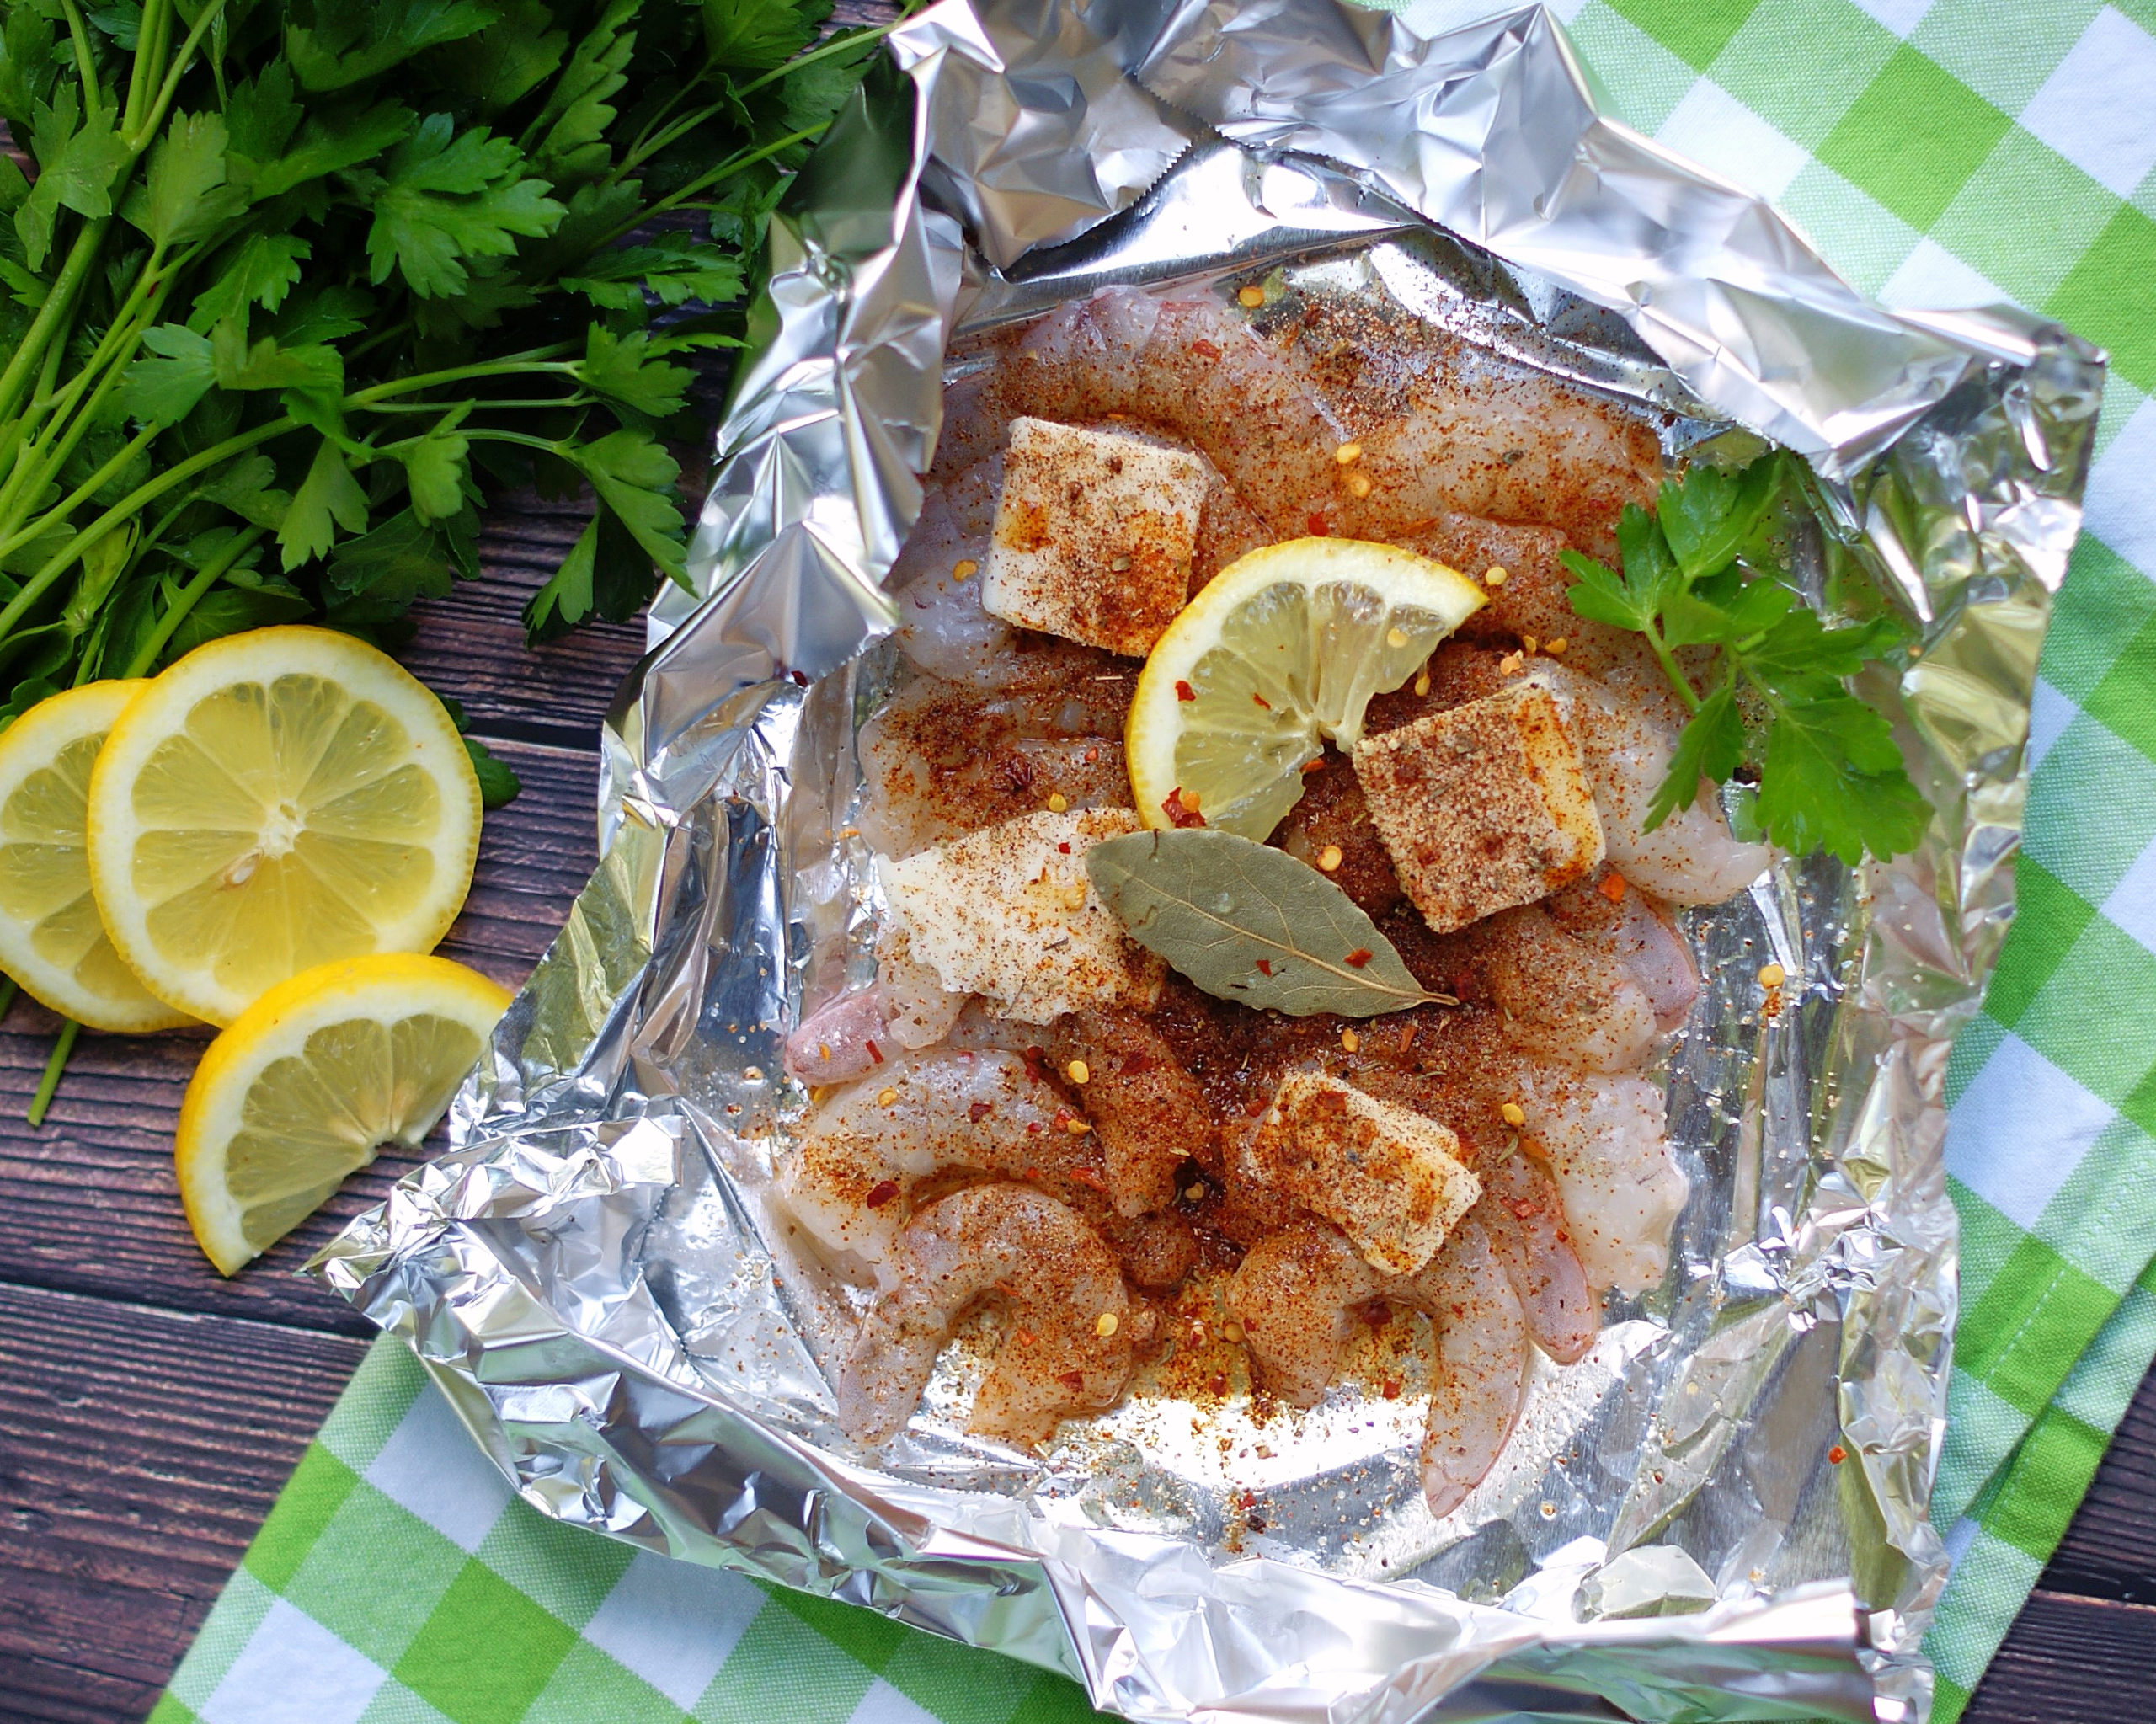 ingredients for Easy Cajun/ Creole Spicy Shrimp Foil Packets for the oven or grill